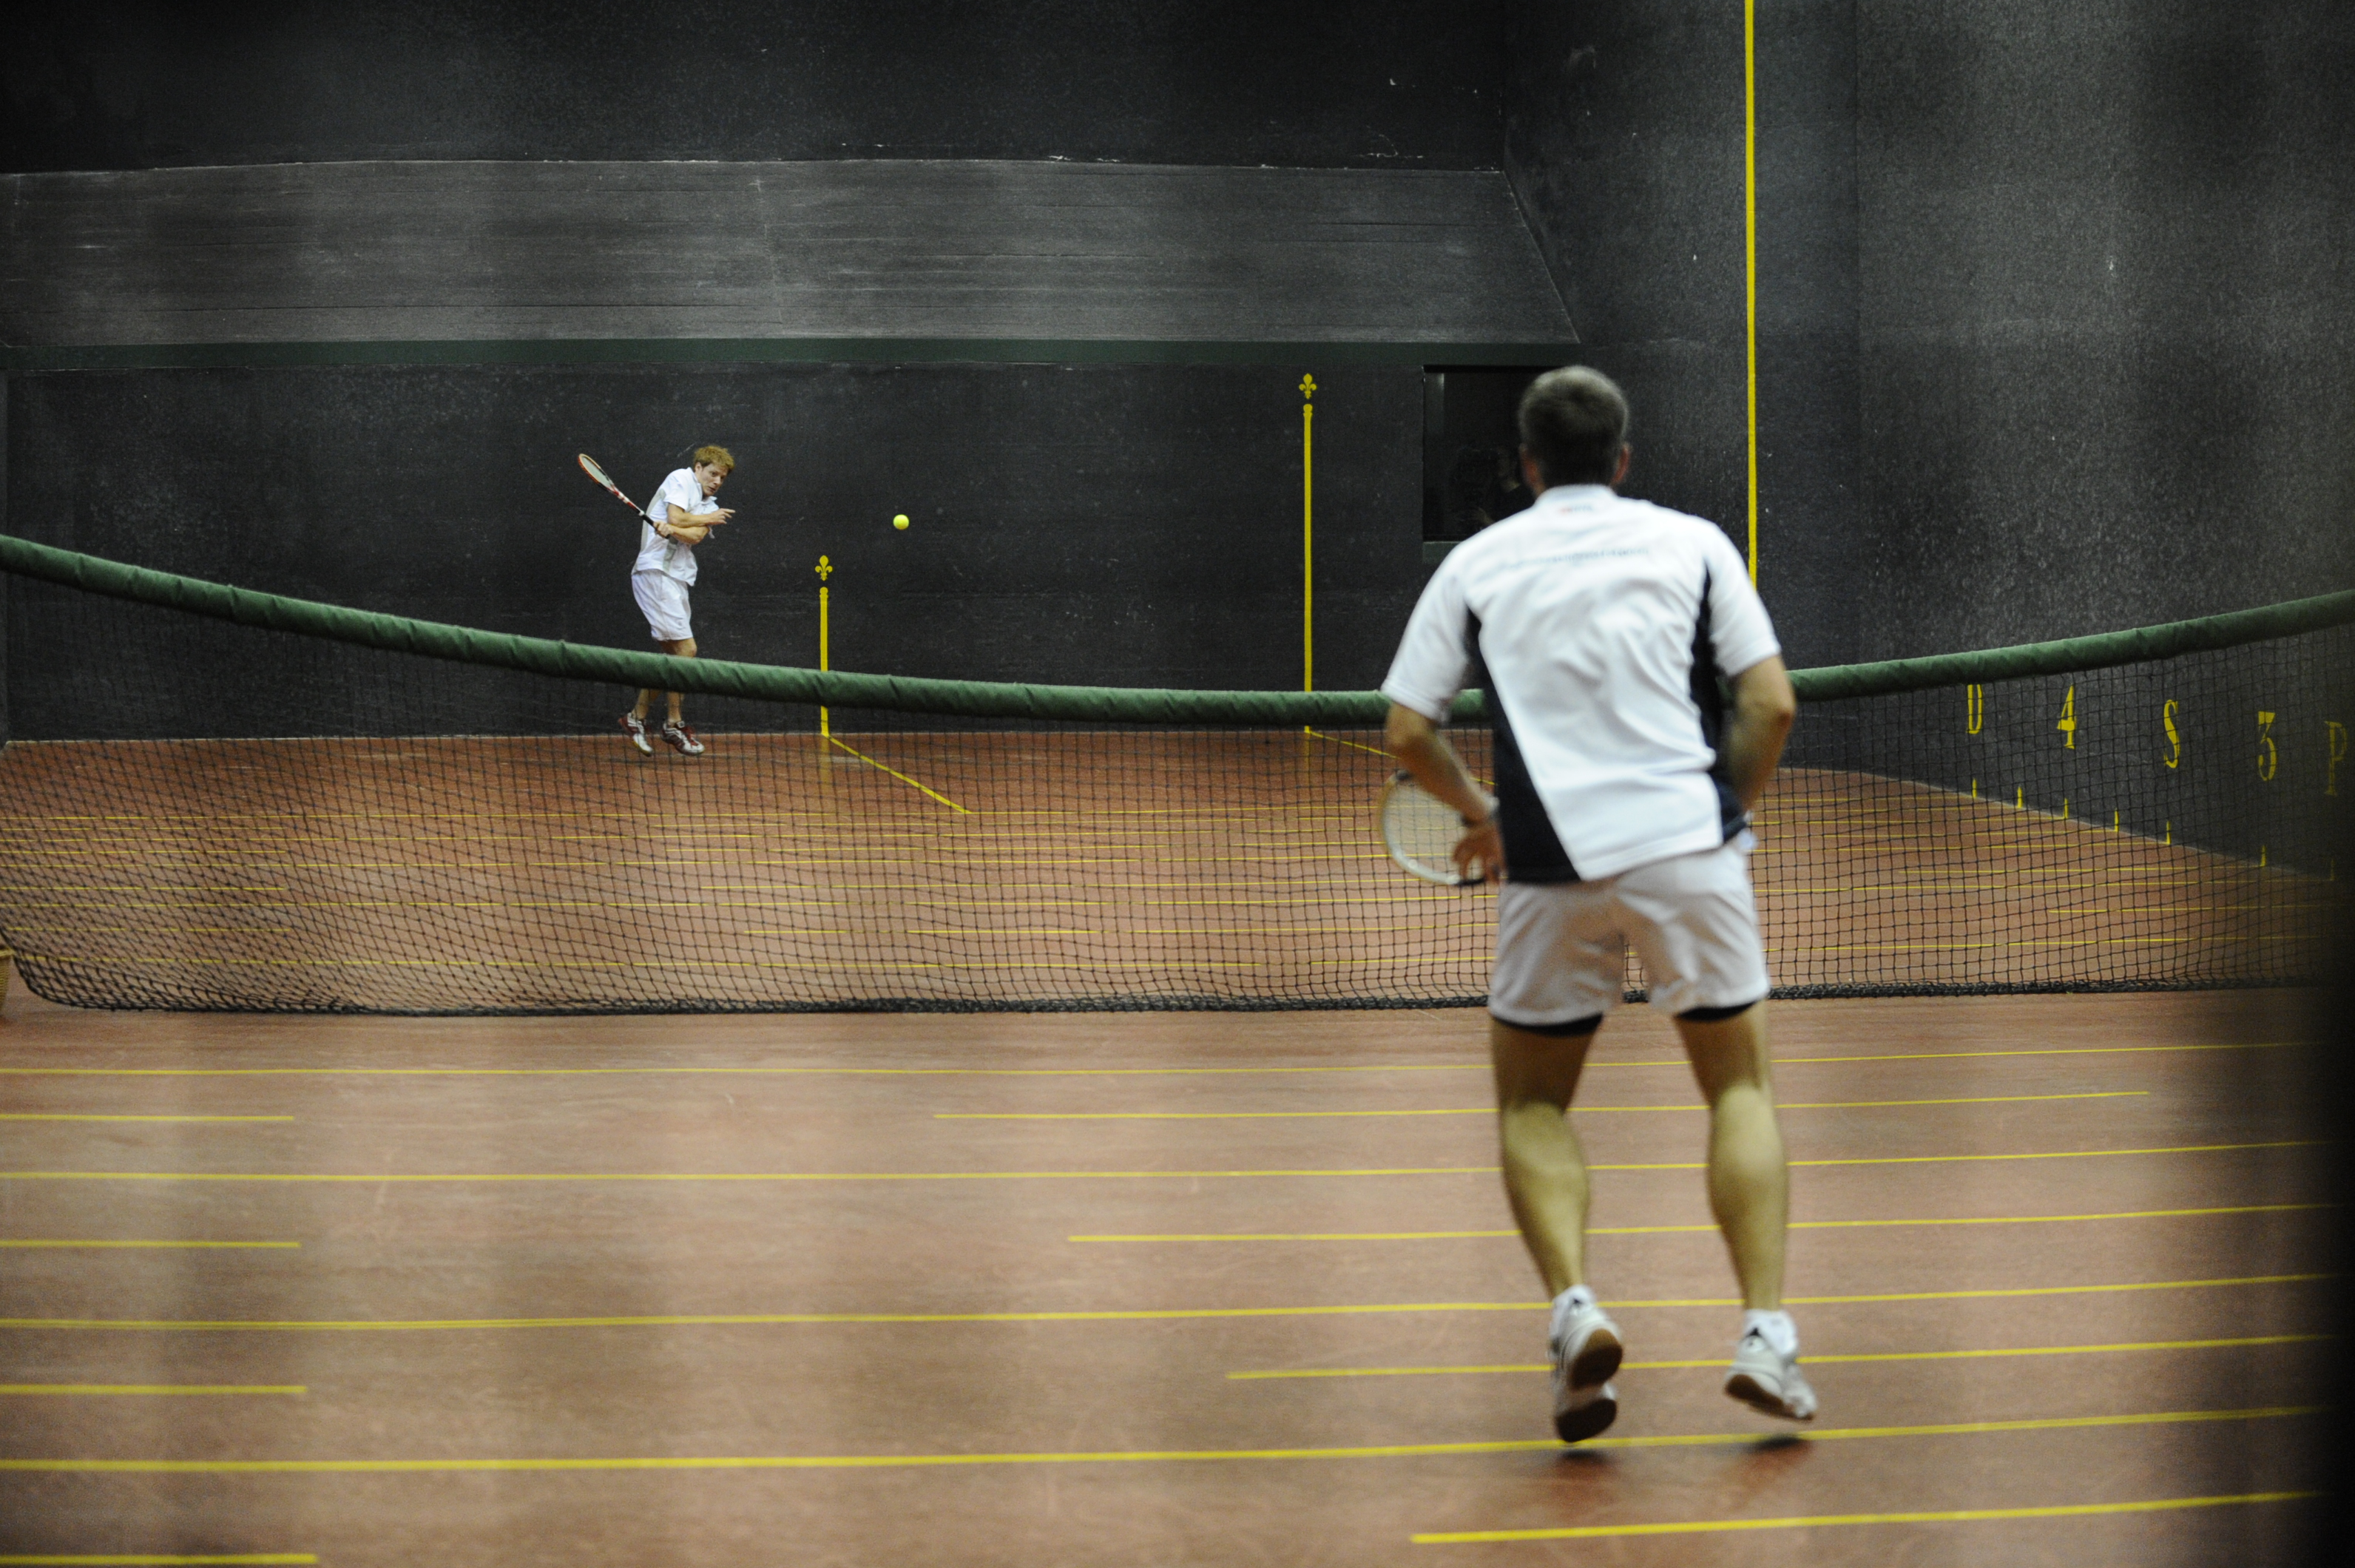 GAMES/REAL TENNIS WORLD CHAMPIONSHIP 2008